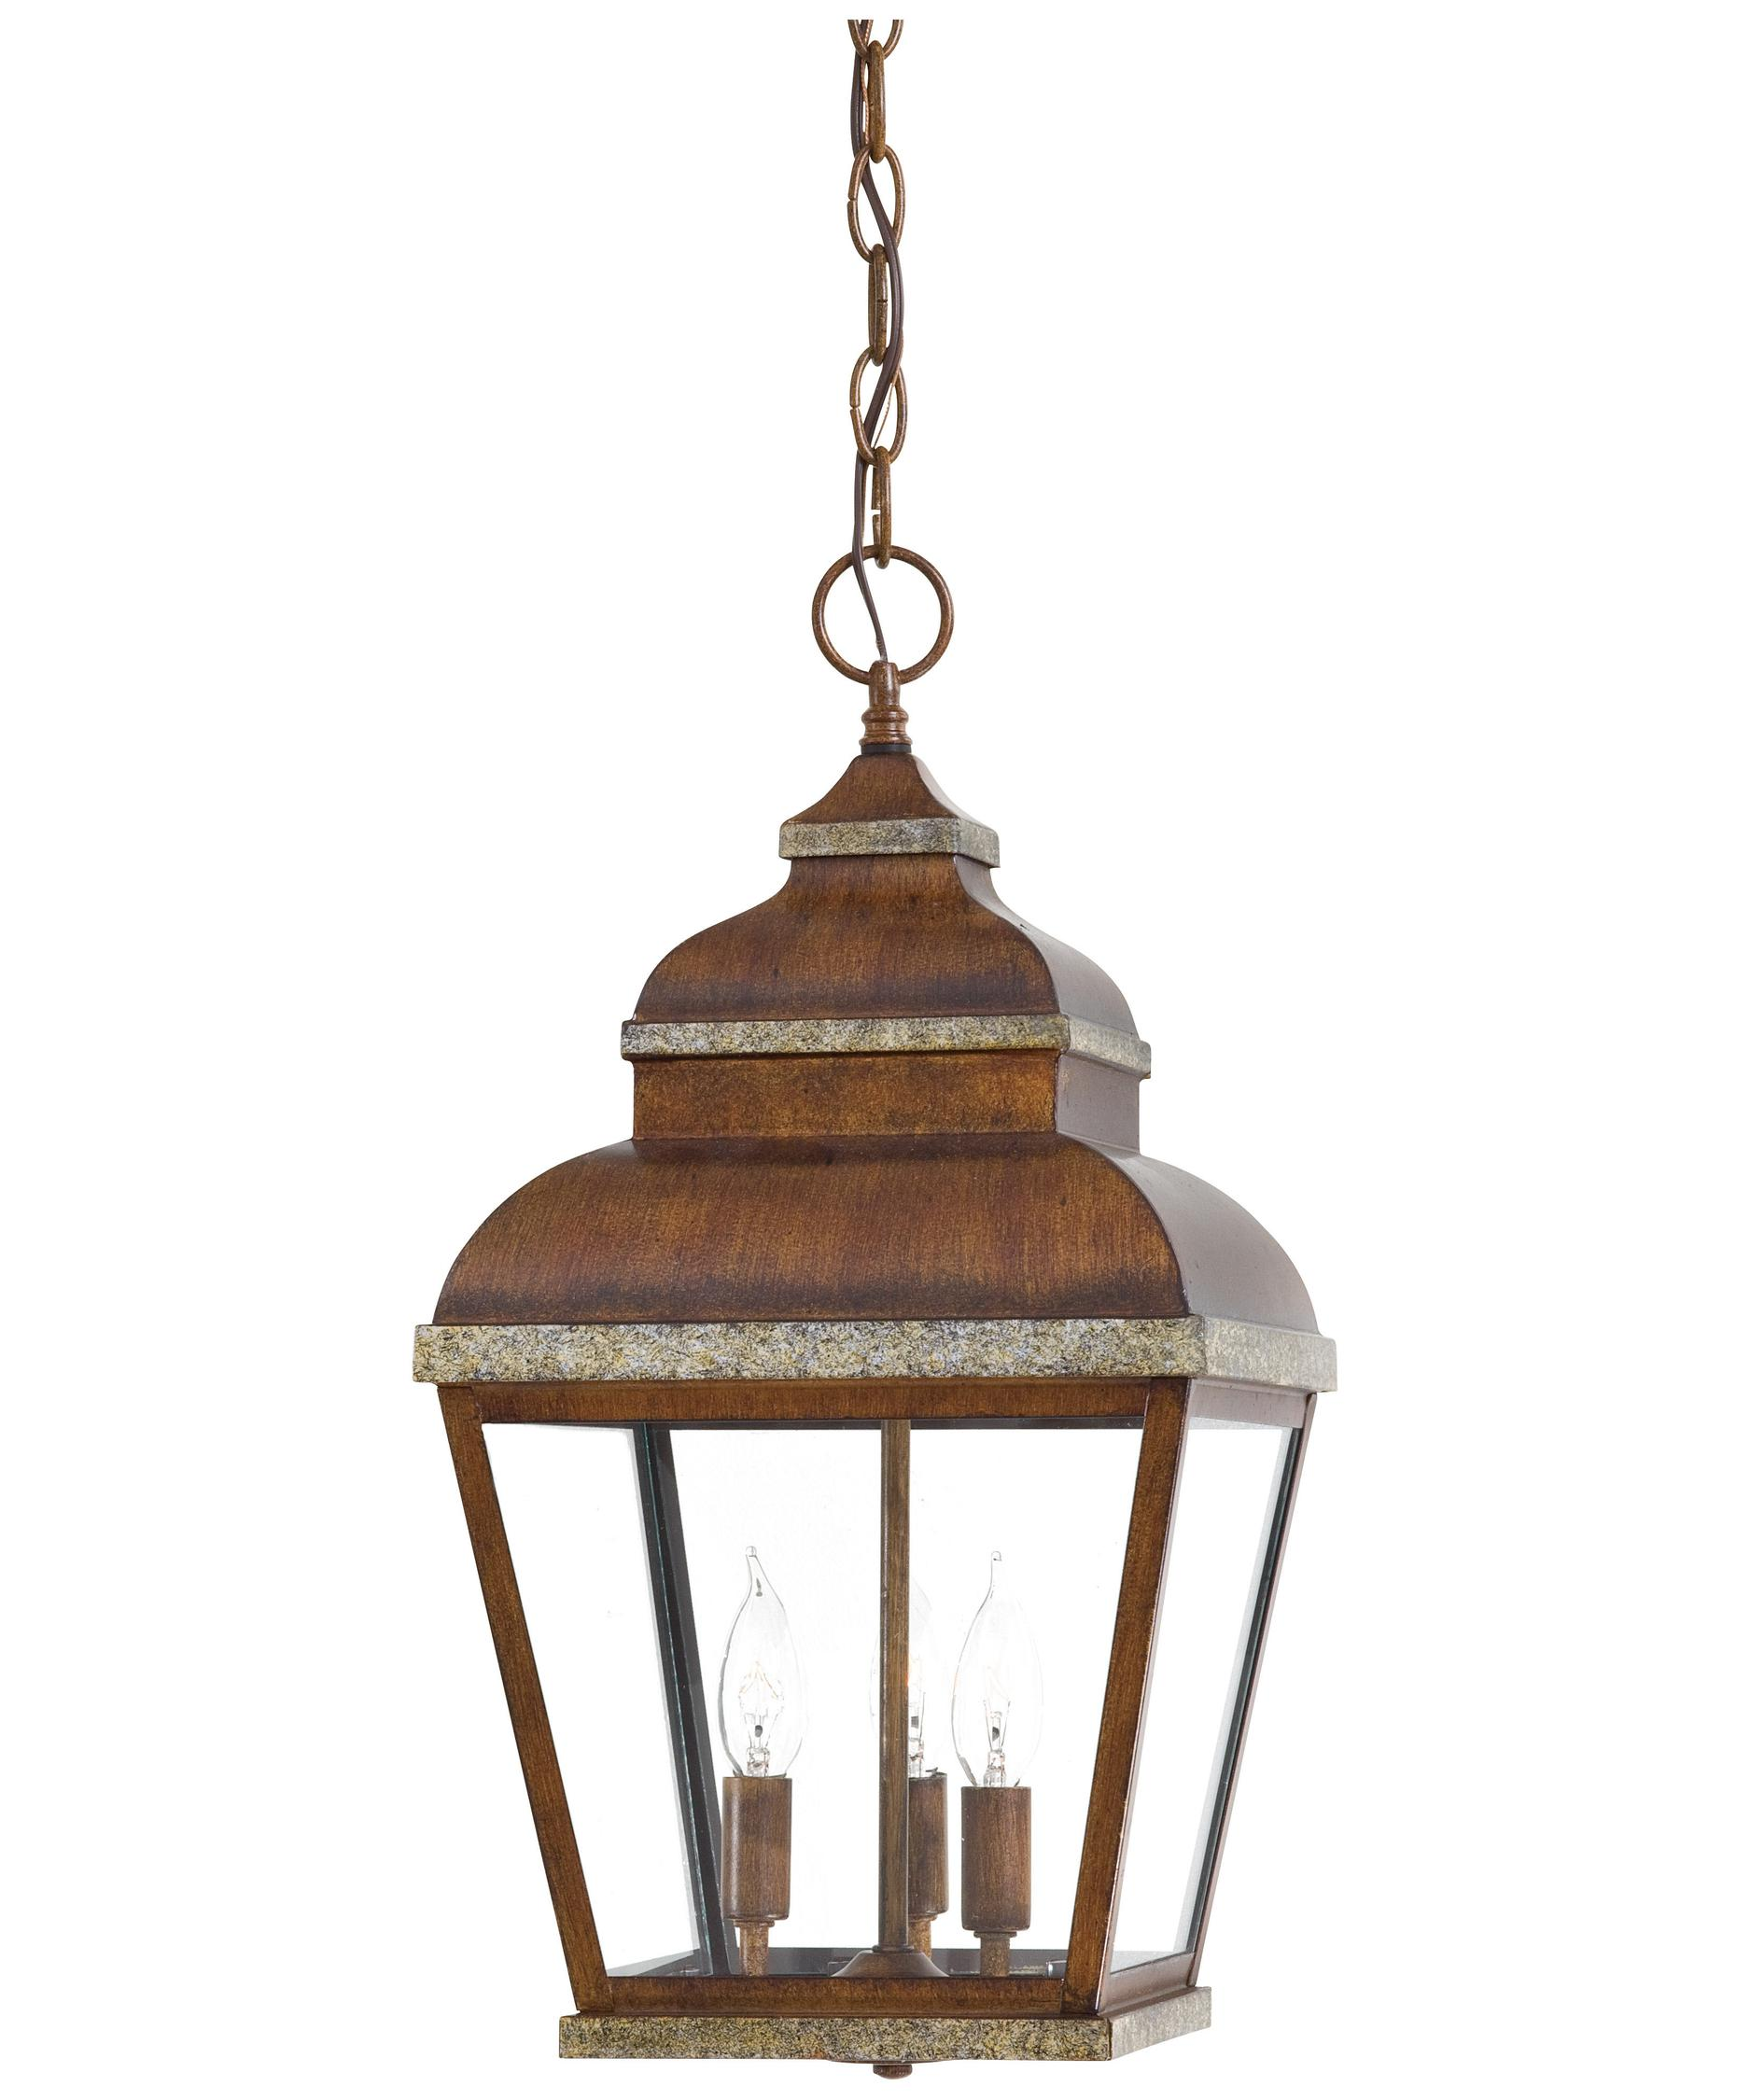 Outdoor hanging lamp - Shown In Mossoro Walnut Wsilver Finish And Clear Glass